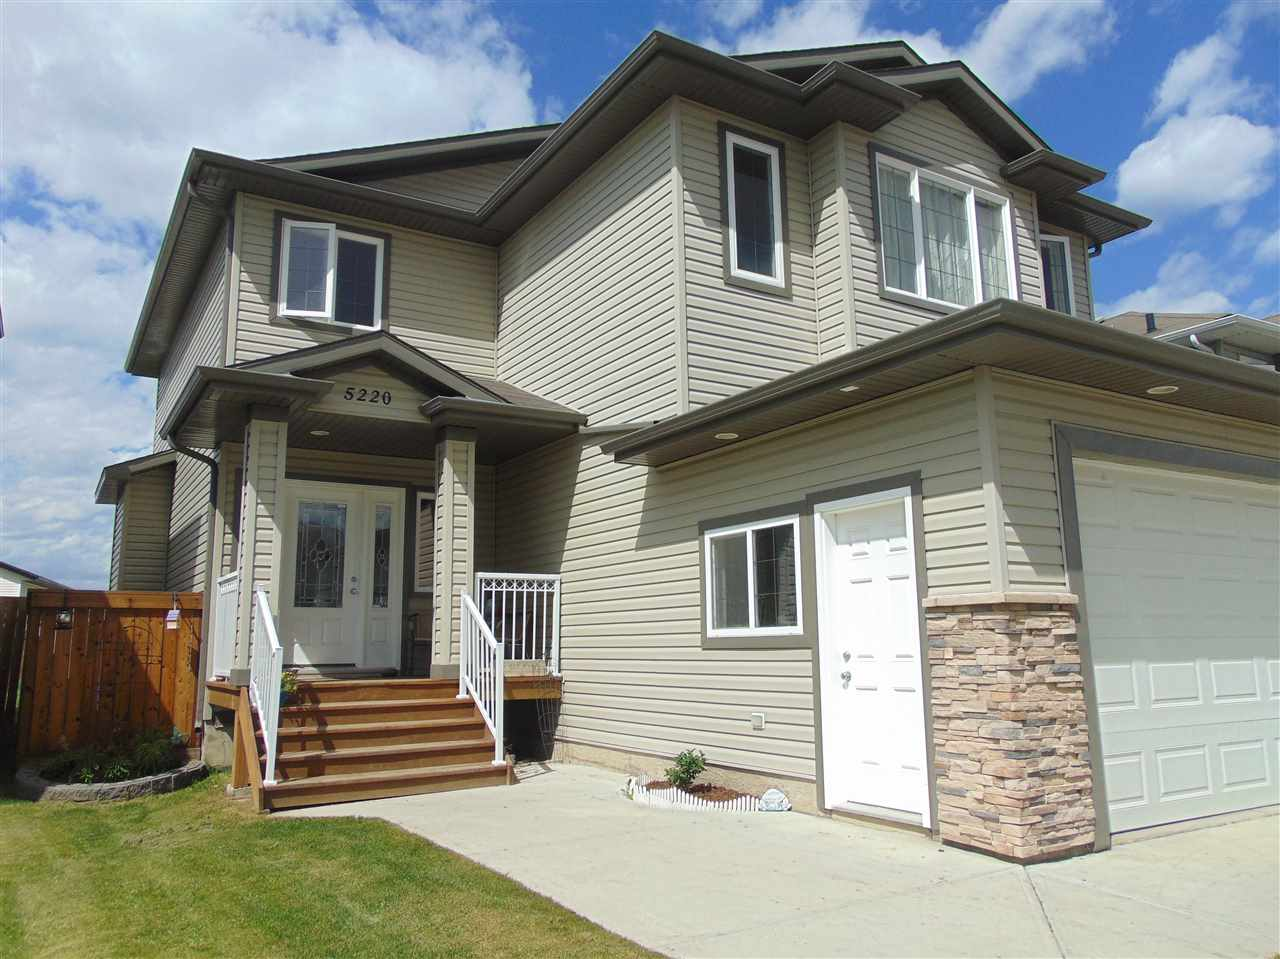 Photo 29: 5220 39 Avenue: Gibbons House for sale : MLS(r) # E4066111